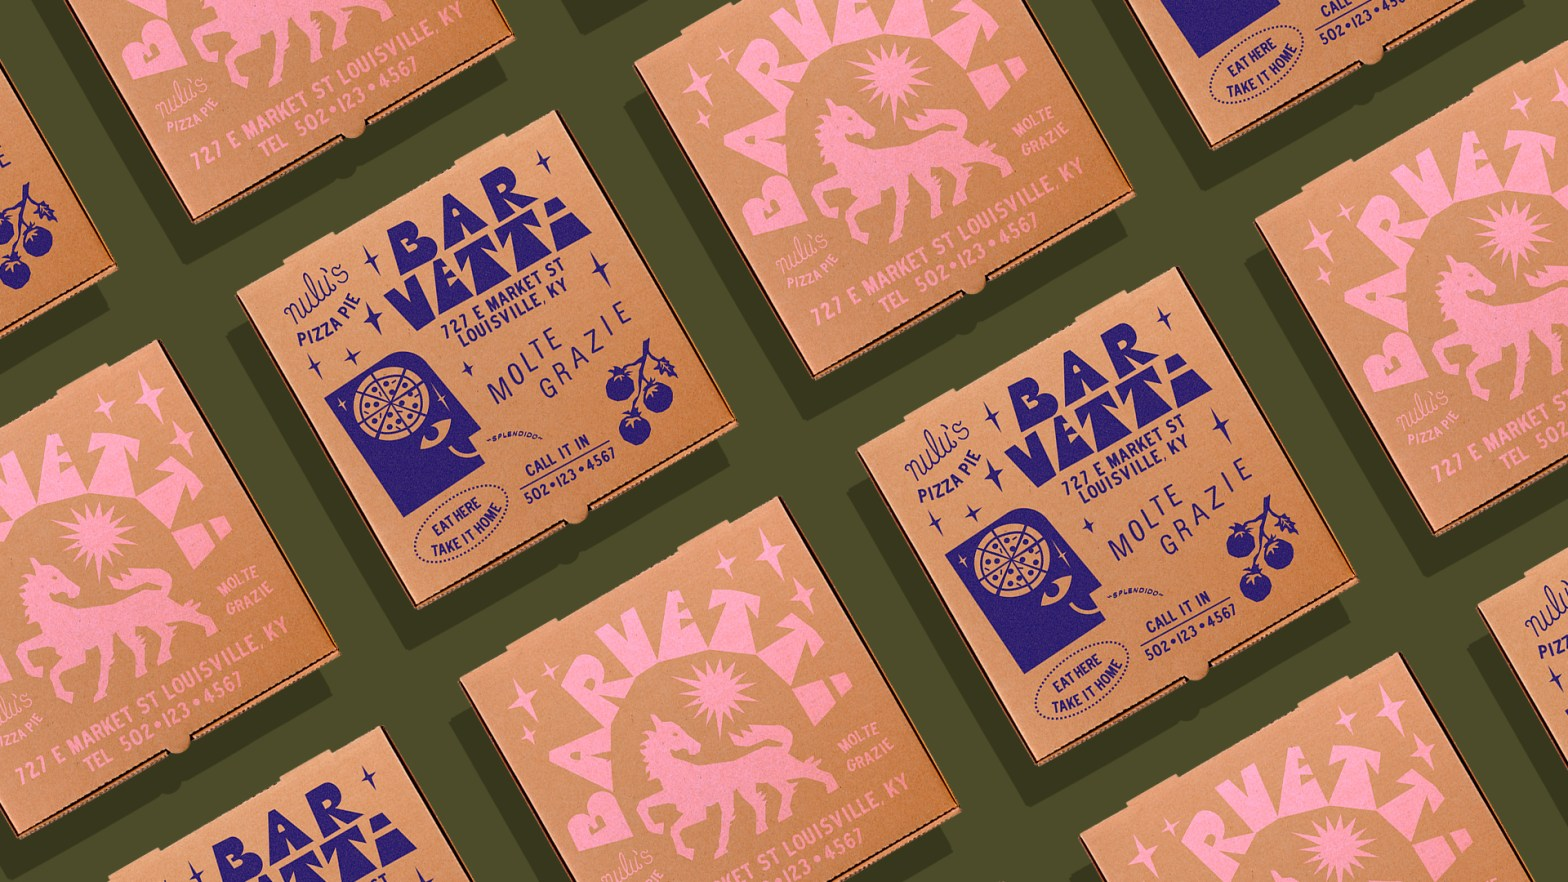 Thumbnail for Zimmer Design's Branding For Bar Vetti Will Fill You Up With Whimsy (and Bucatini)